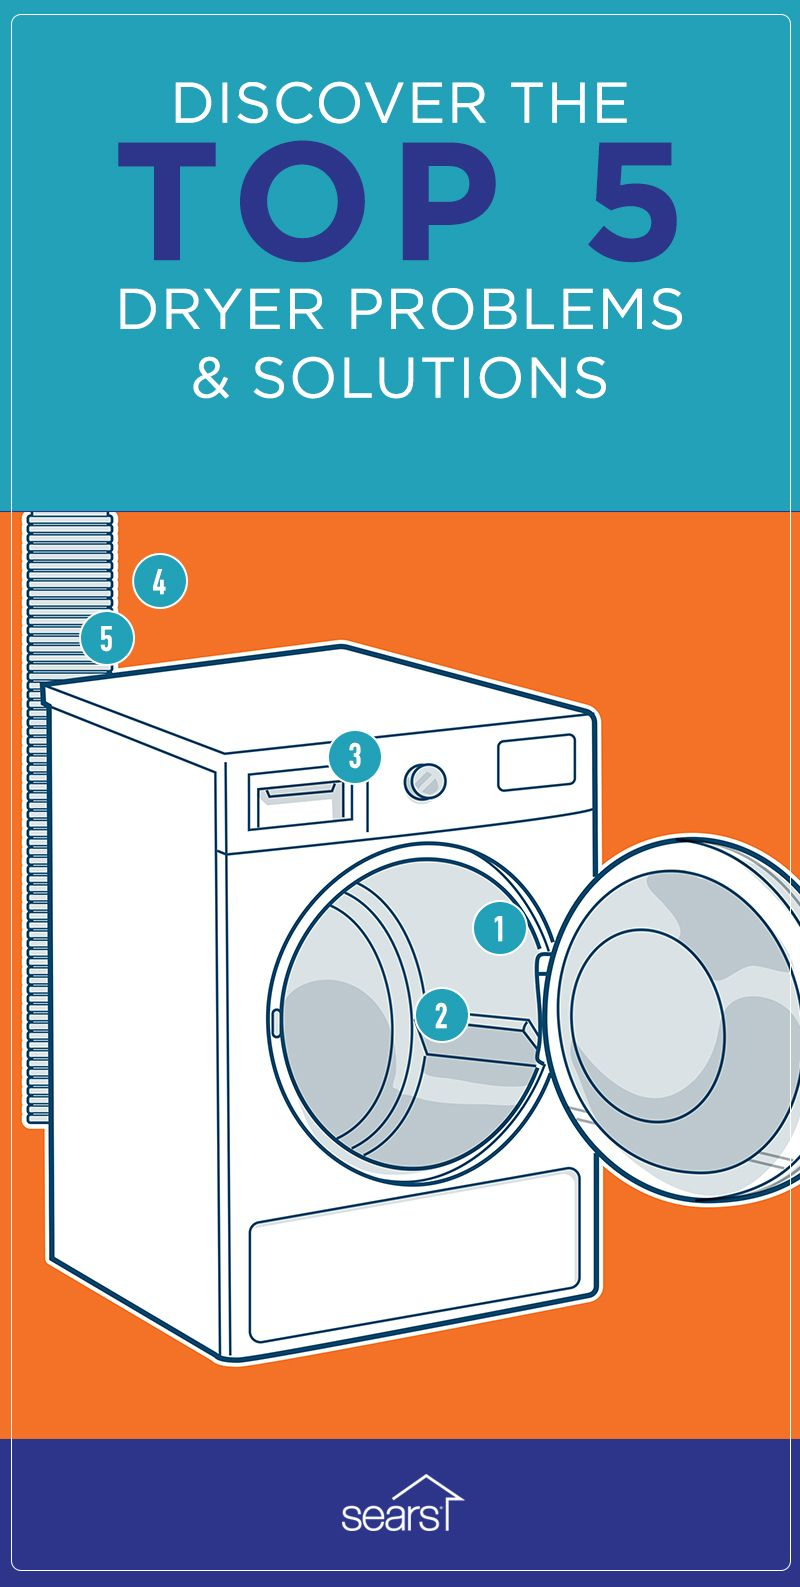 Is your dryer shutting off early? Does it make strange noises? Our ...